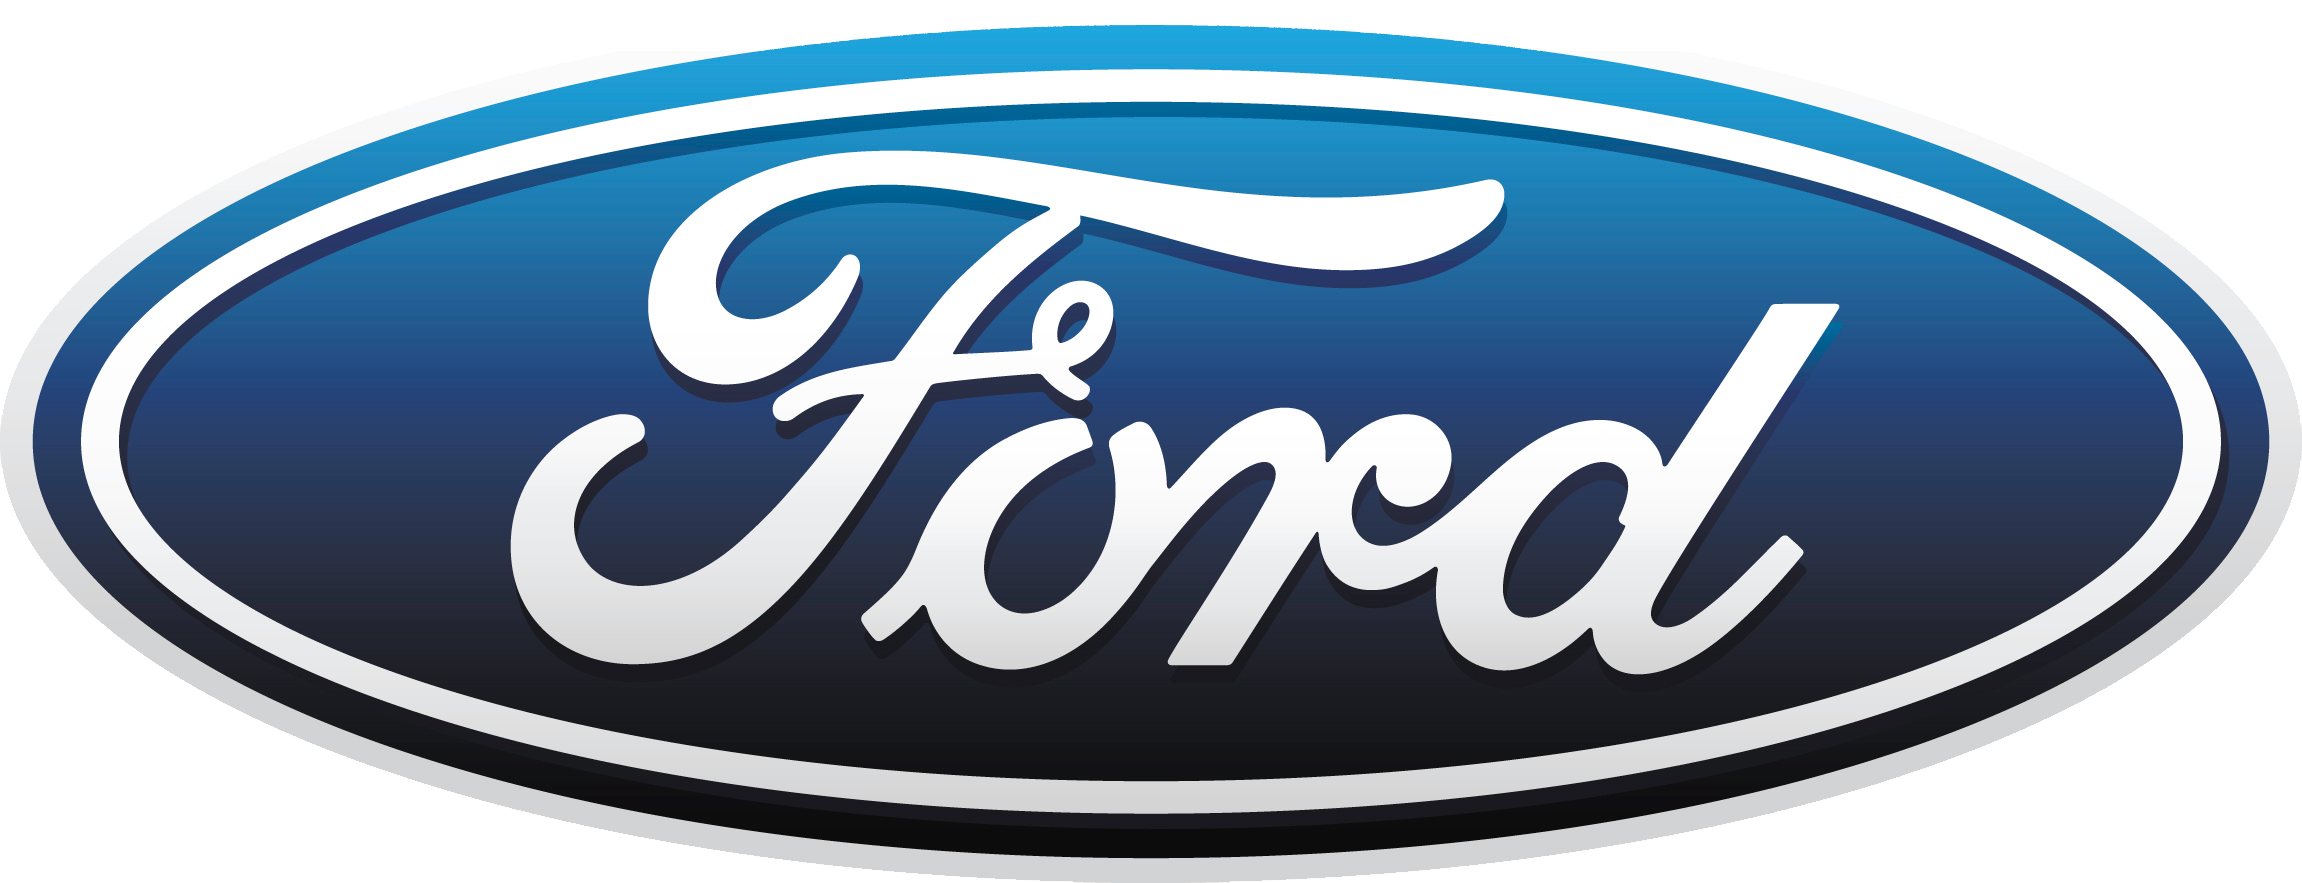 EWB Gala_Ford Logo_Blue Oval_No Background